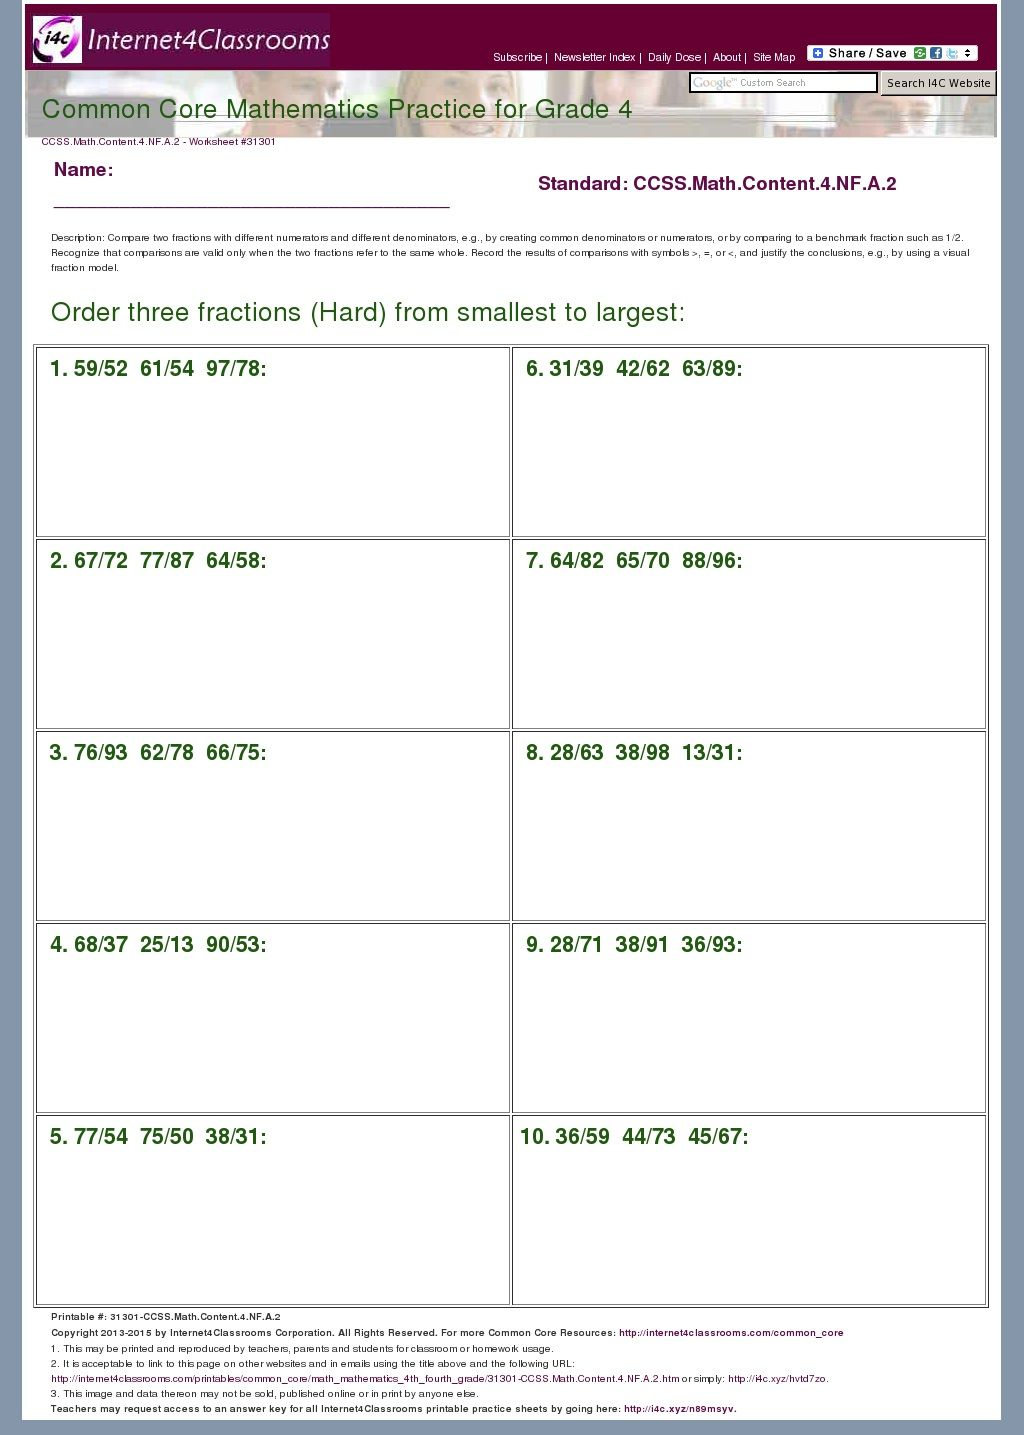 4th Grade Order Three Fractions Hard From Smallest To